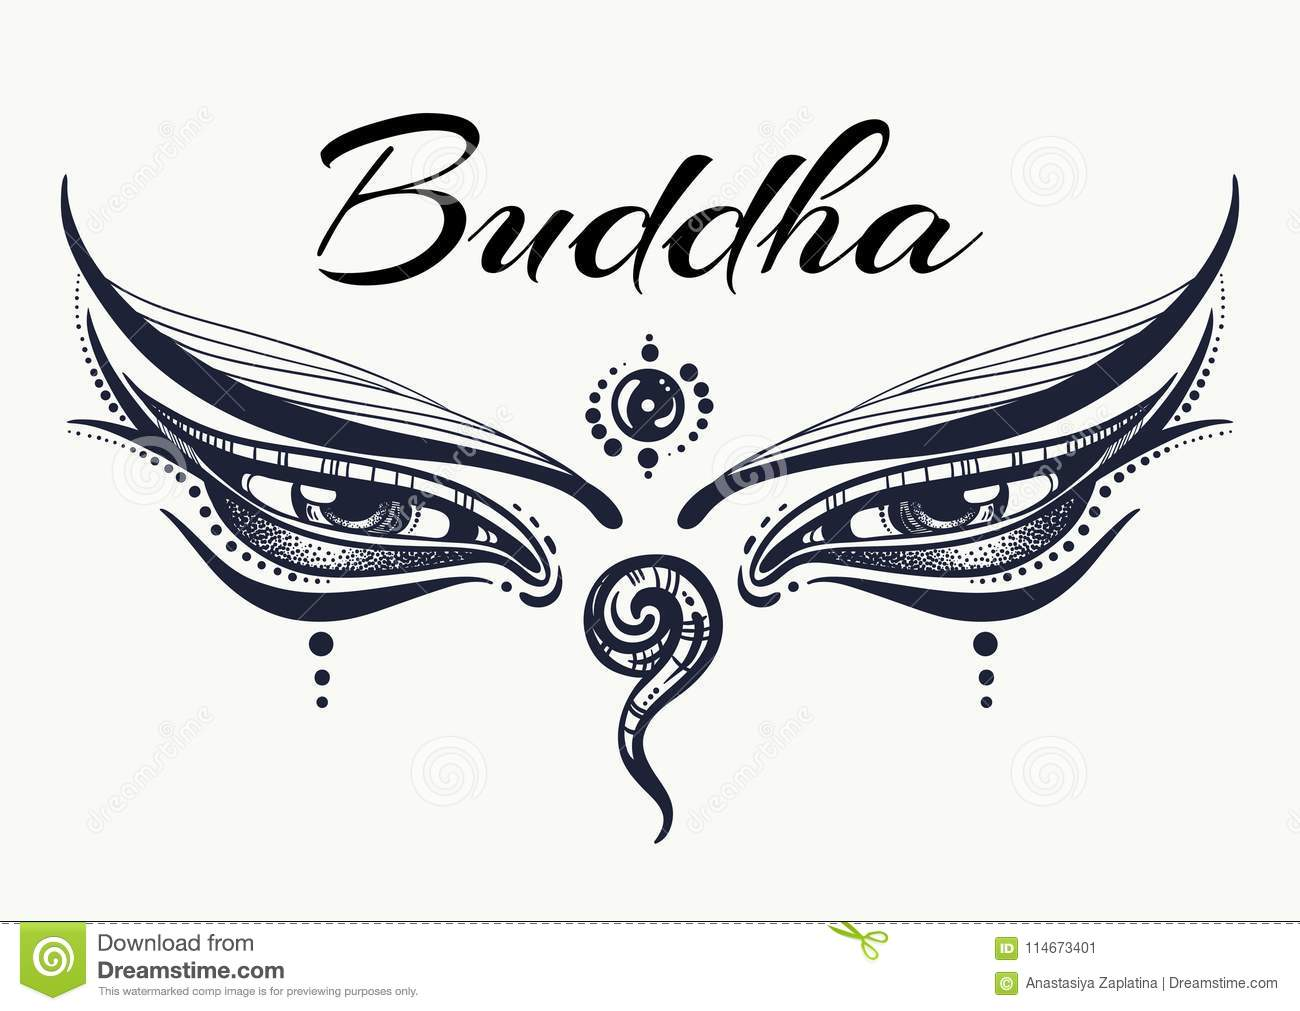 Eyes Of Buddha Wisdom Concept Hand Drawn High Detailed Engraved Vector Art Tattoo Yoga Spiritualy Textile Stock Vector Illustration Of Element Handdrawn 114673401 A dedicated page to yoga & tattoo feel free to send photo of tattoo you wear or any interesting. https www dreamstime com eyes buddha wisdom concept hand drawn high detailed engraved vector art tattoo yoga spiritualy textile image114673401